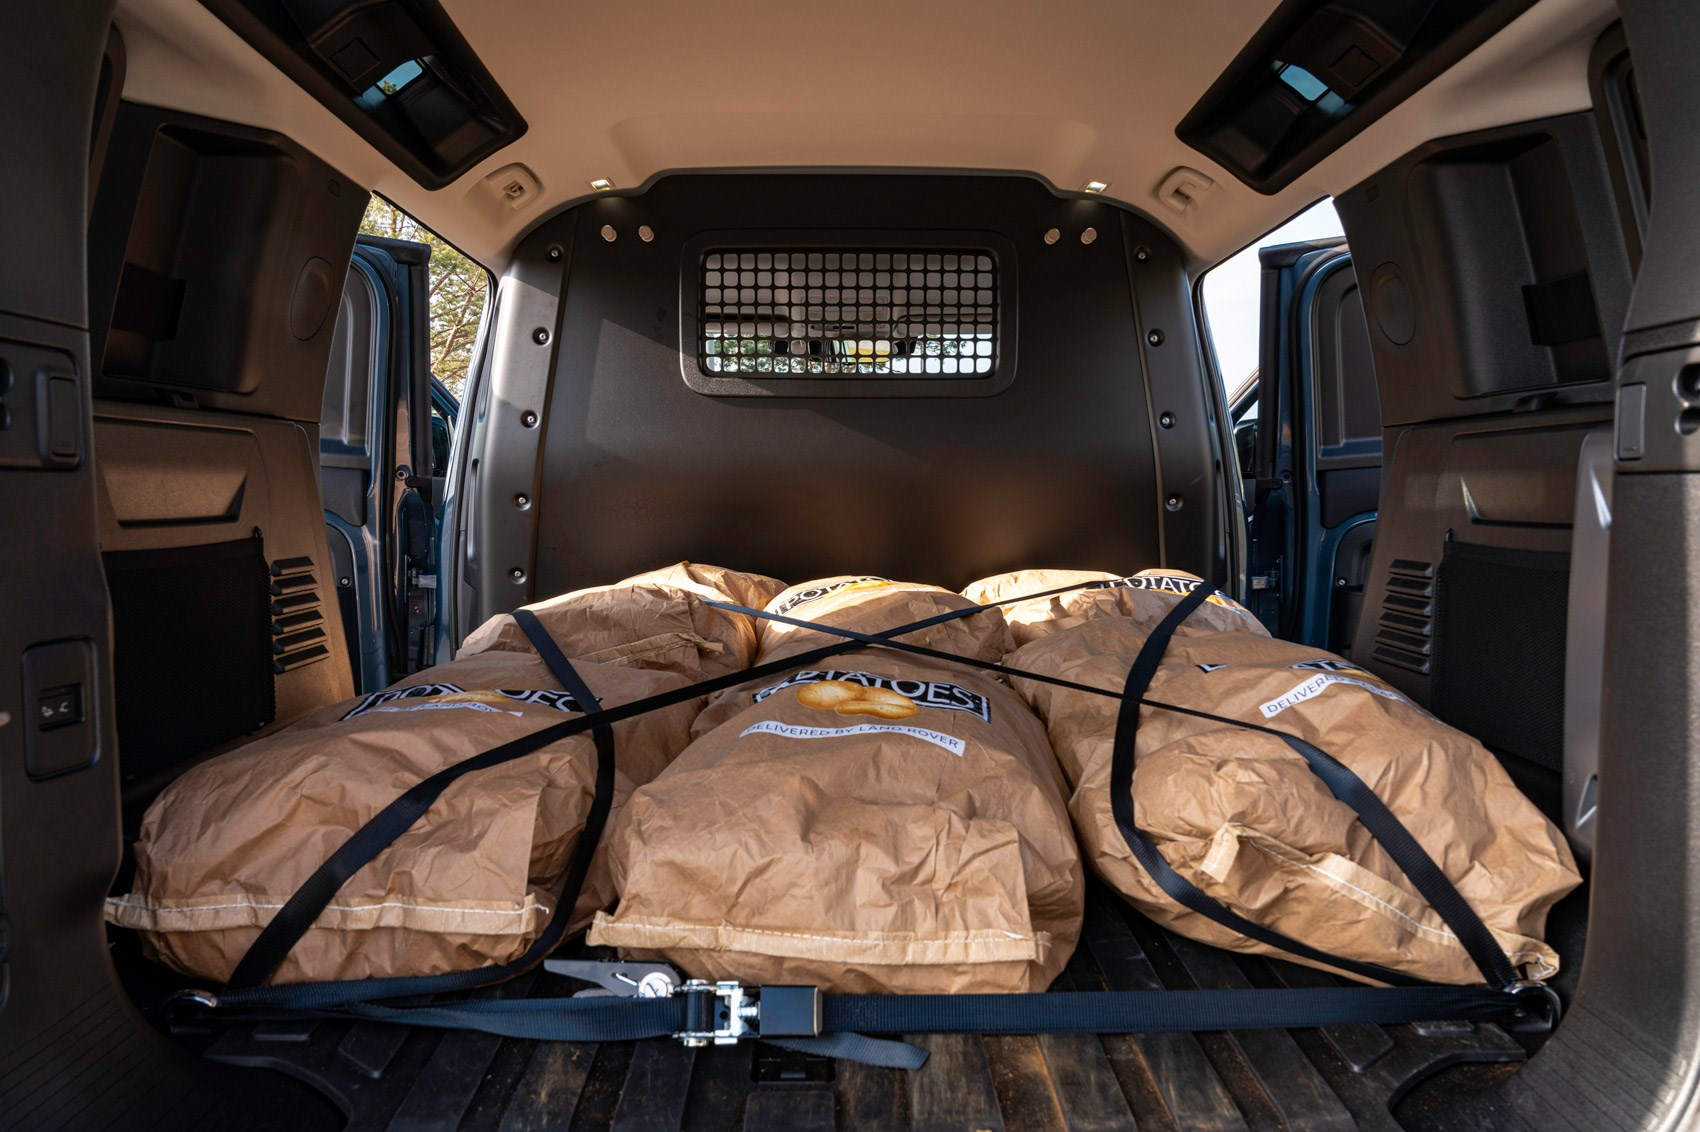 Land Rover Defender Hard Top review - commercial 4x4 - 110 load area with potatoes